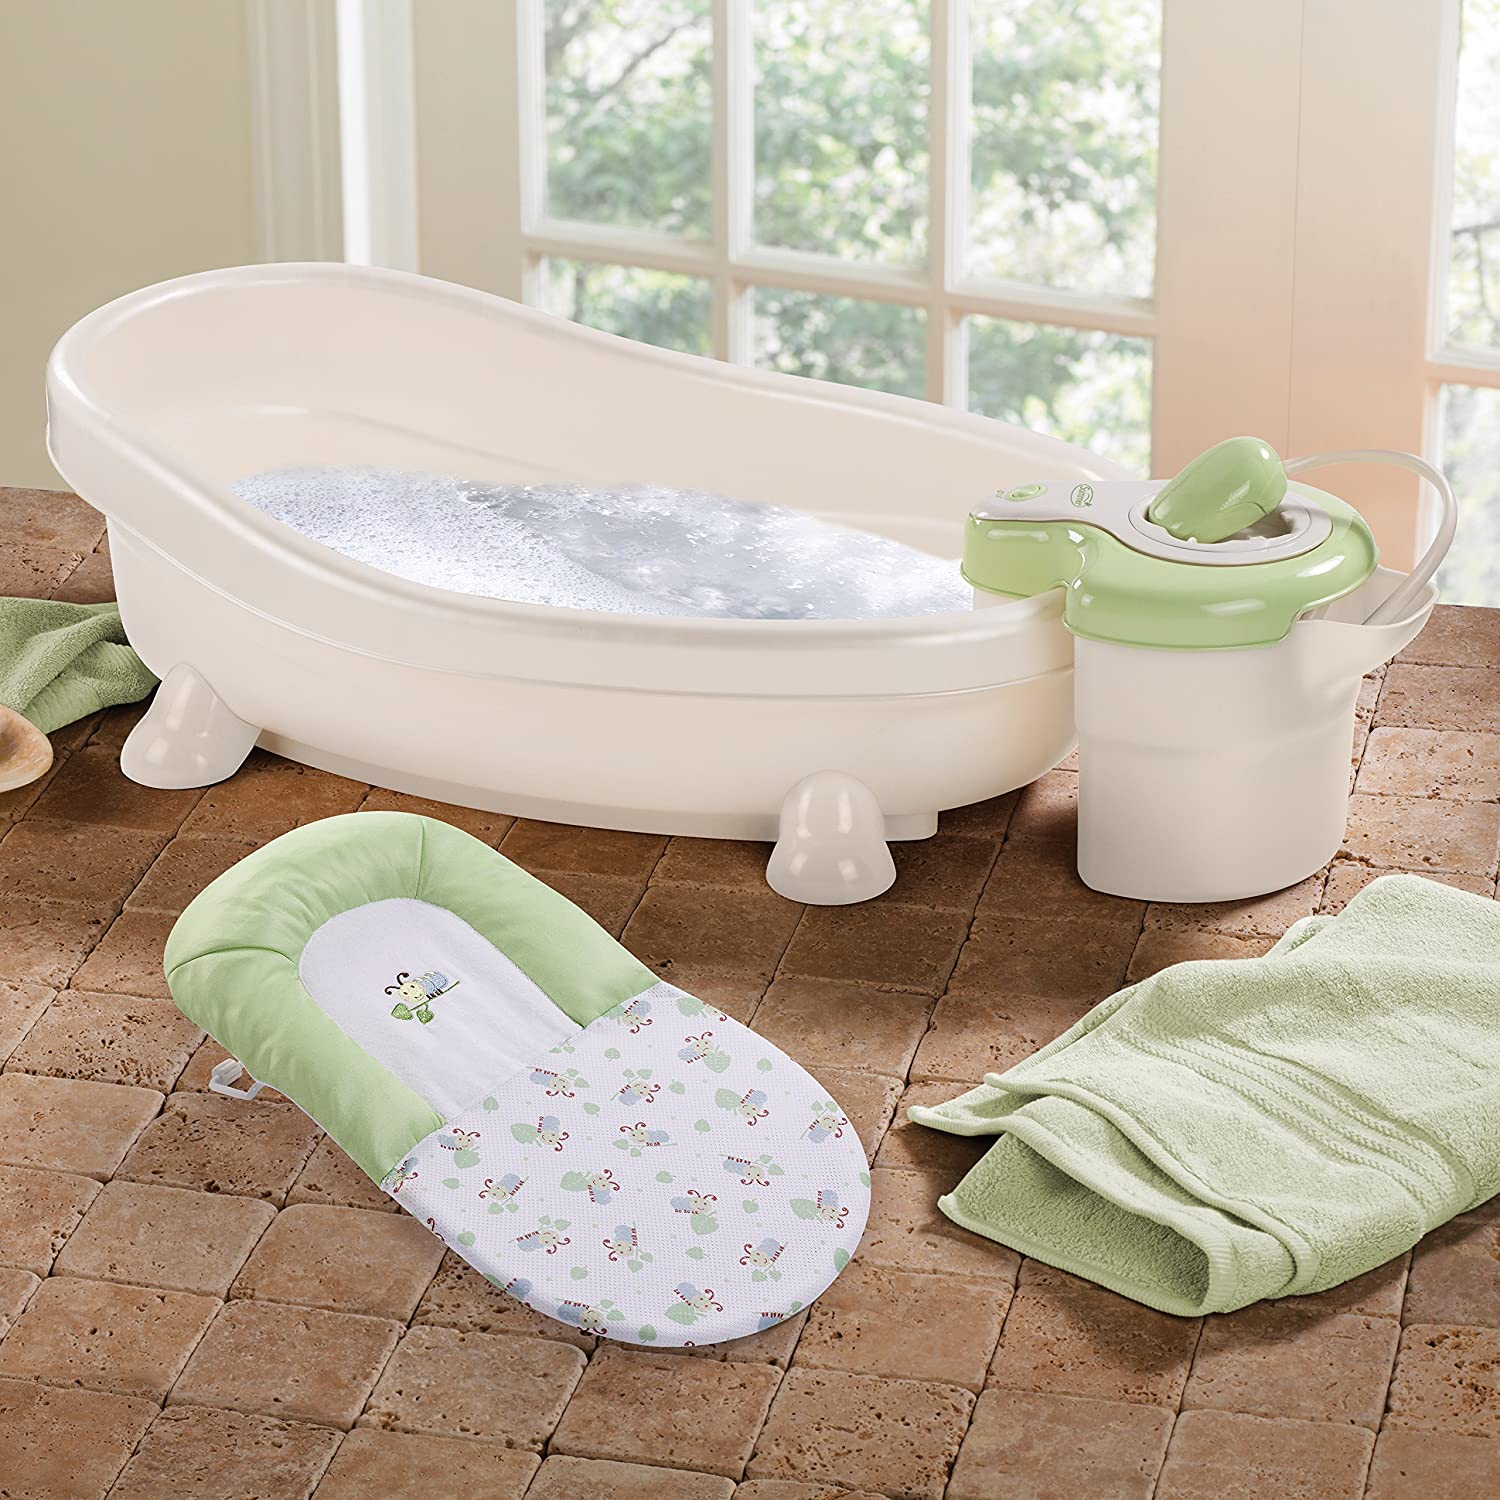 Amazon.com : Summer Infant Soothing Spa And Shower Baby Bath : Baby Bathing  Seats And Tubs : Baby